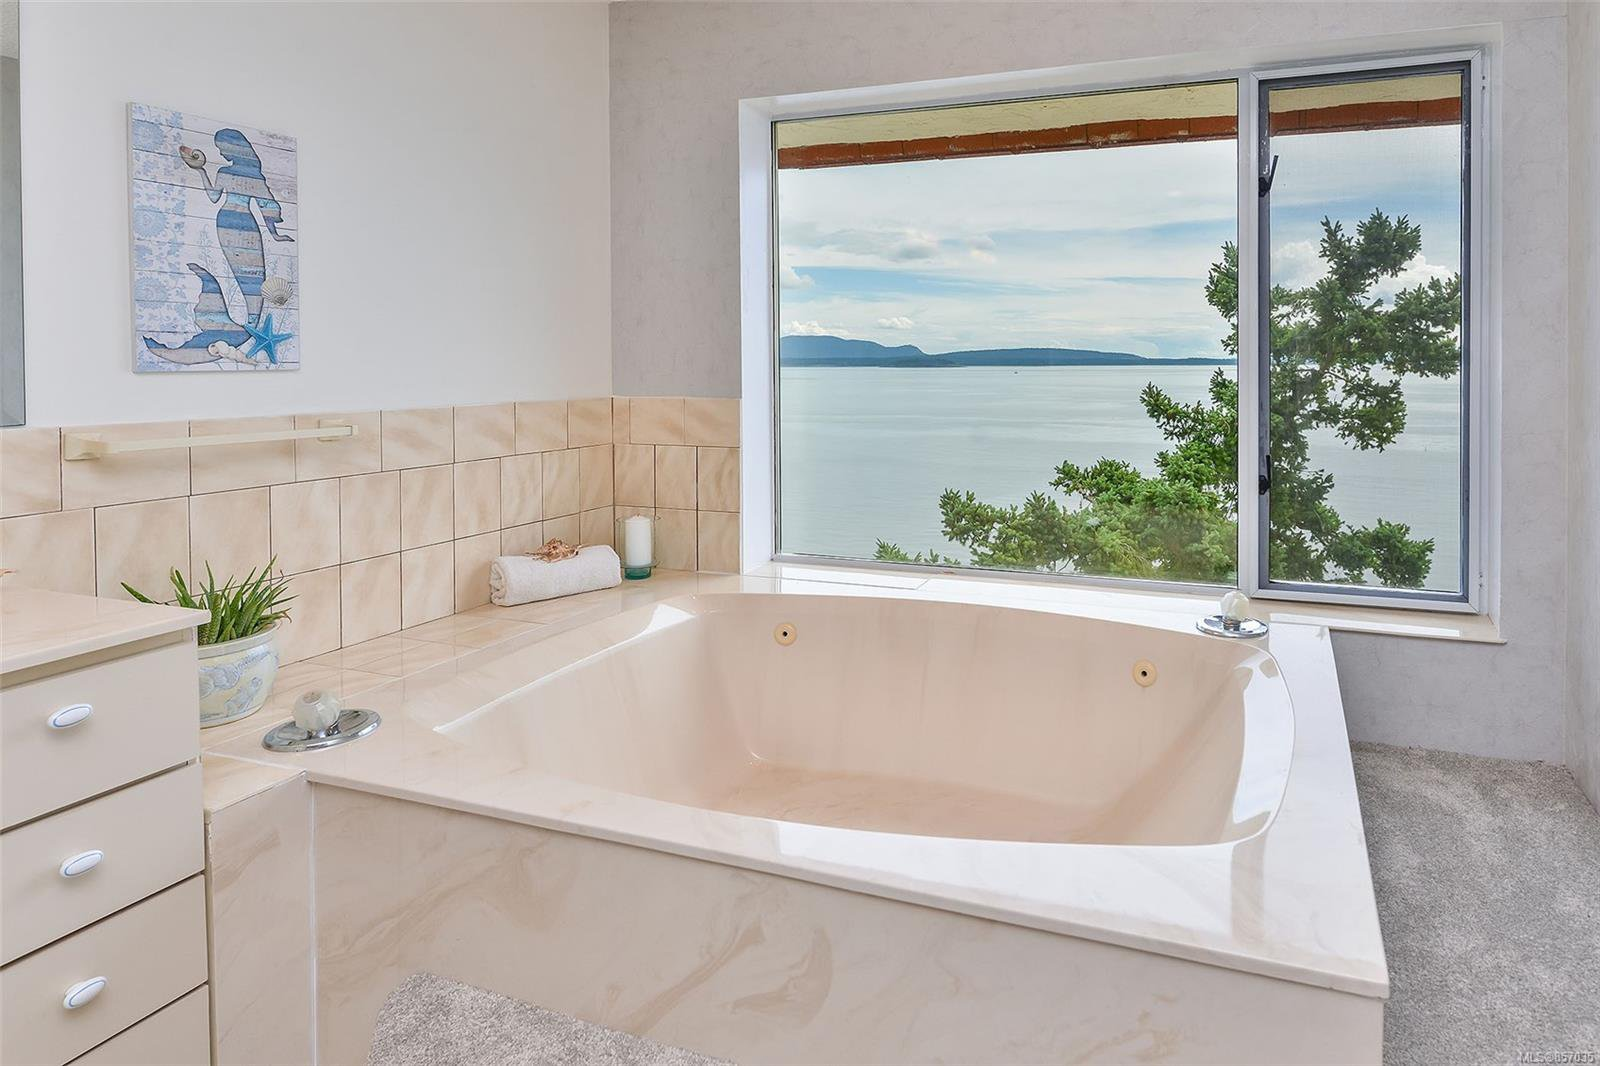 Photo 23: Photos: 172 Cliffside Rd in : GI Saturna Island House for sale (Gulf Islands)  : MLS®# 857035